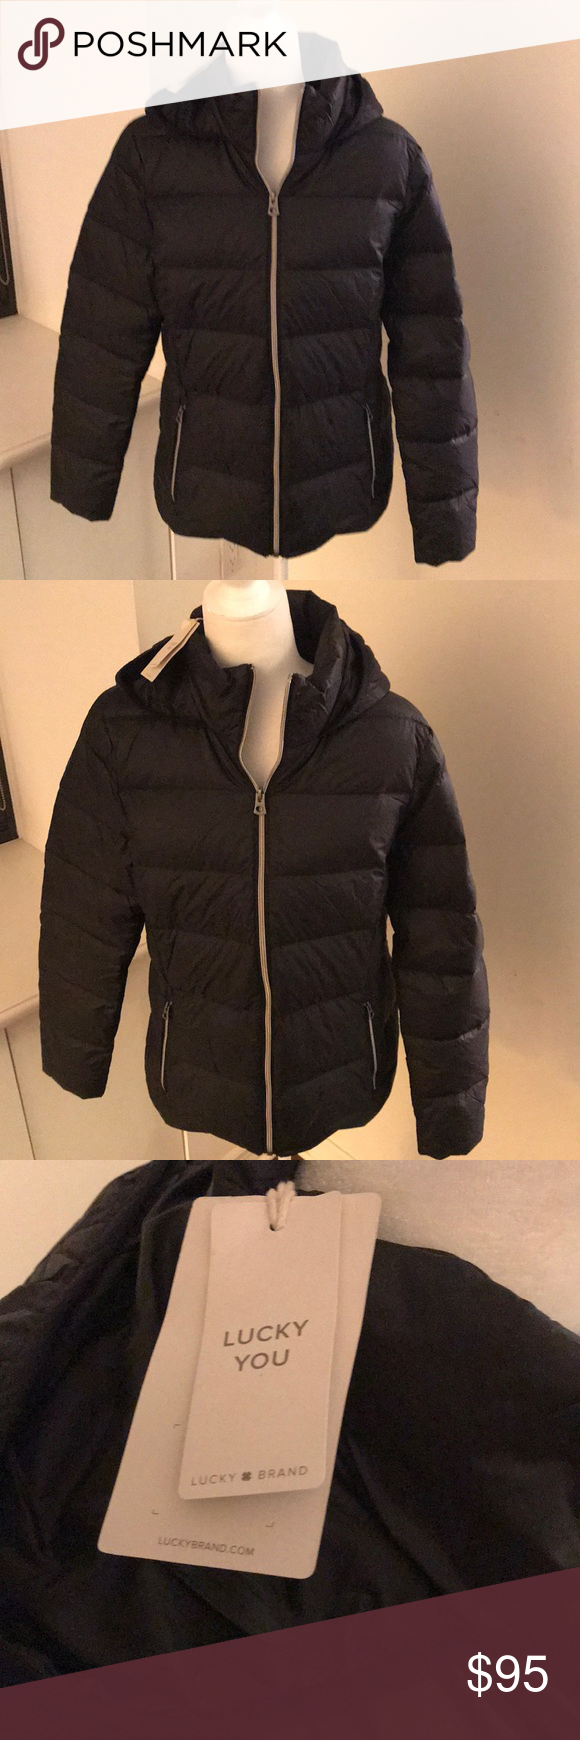 Nwt Lucky Brand Packable Down Puffer Jacket Lucky Brand Jackets Puffer Jackets [ 1740 x 580 Pixel ]